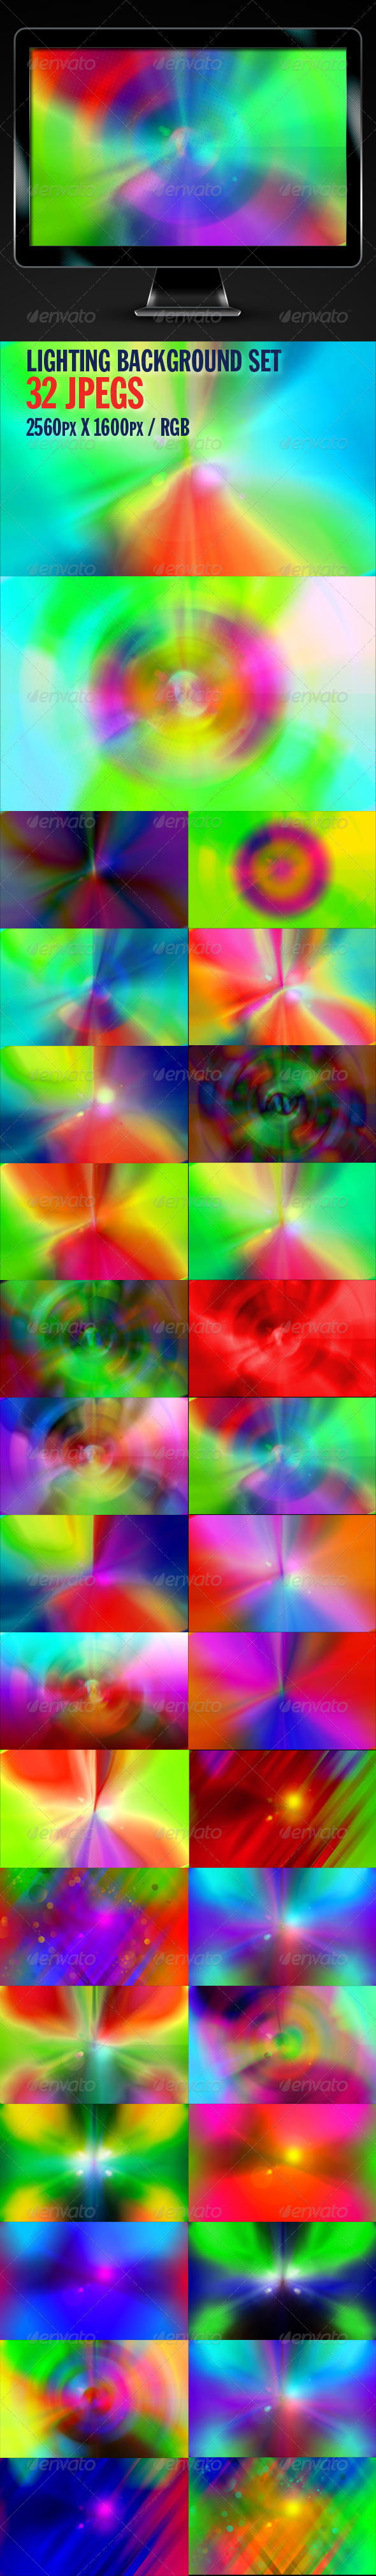 Lighting Backgrounds Set - Backgrounds Graphics